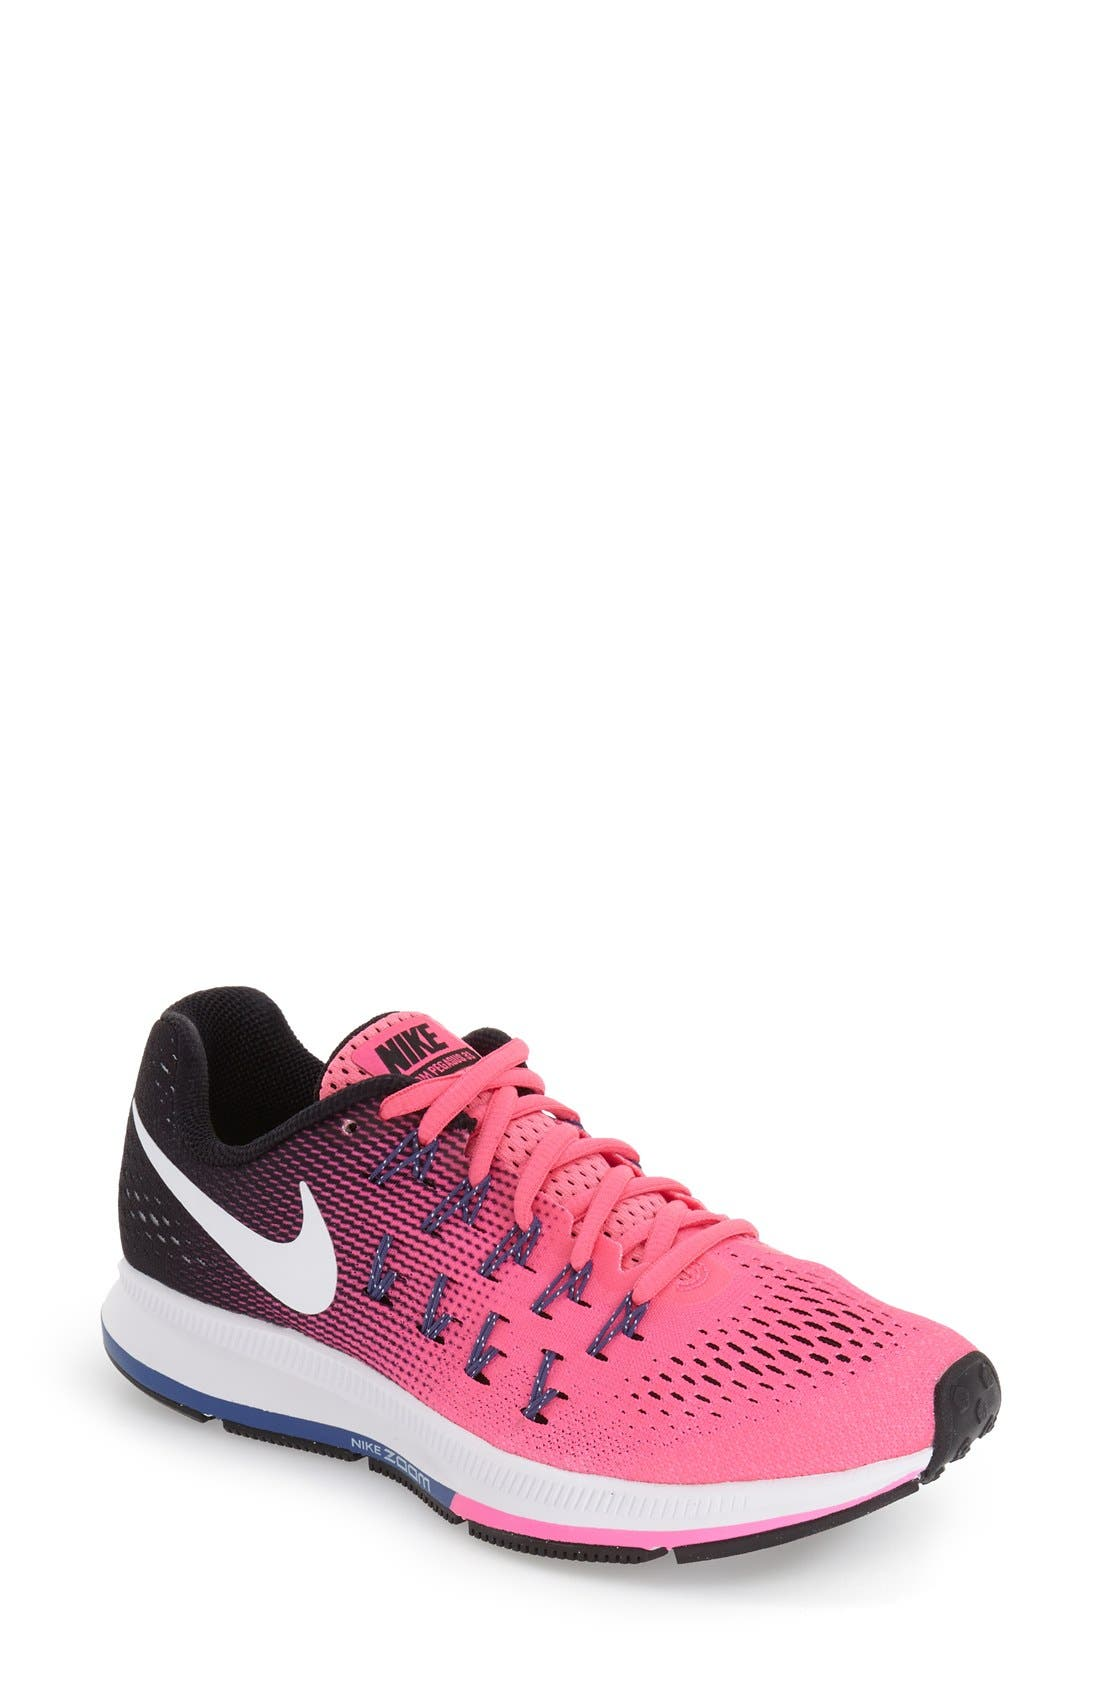 Alternate Image 1 Selected - Nike Zoom Pegasus 33 Sneaker (Women)